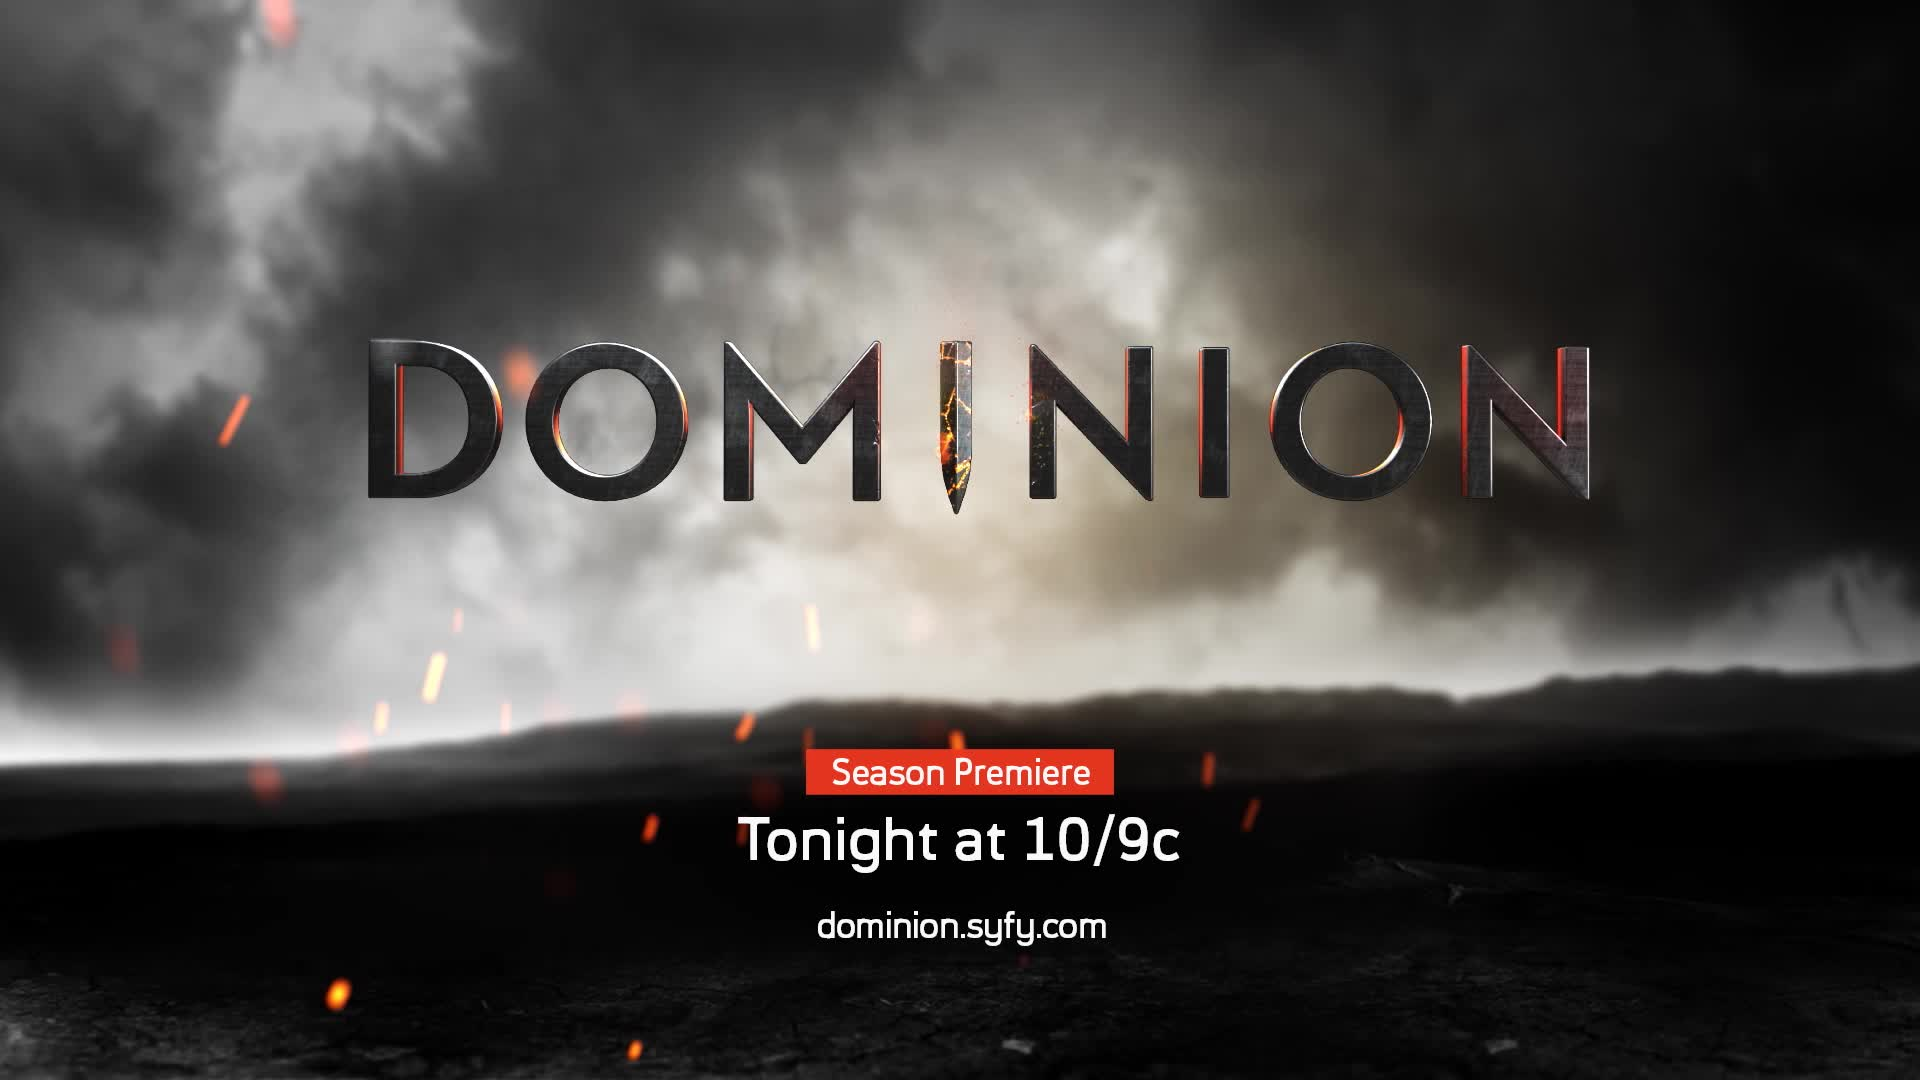 Dominion full movie hd 1080p download kickass movie